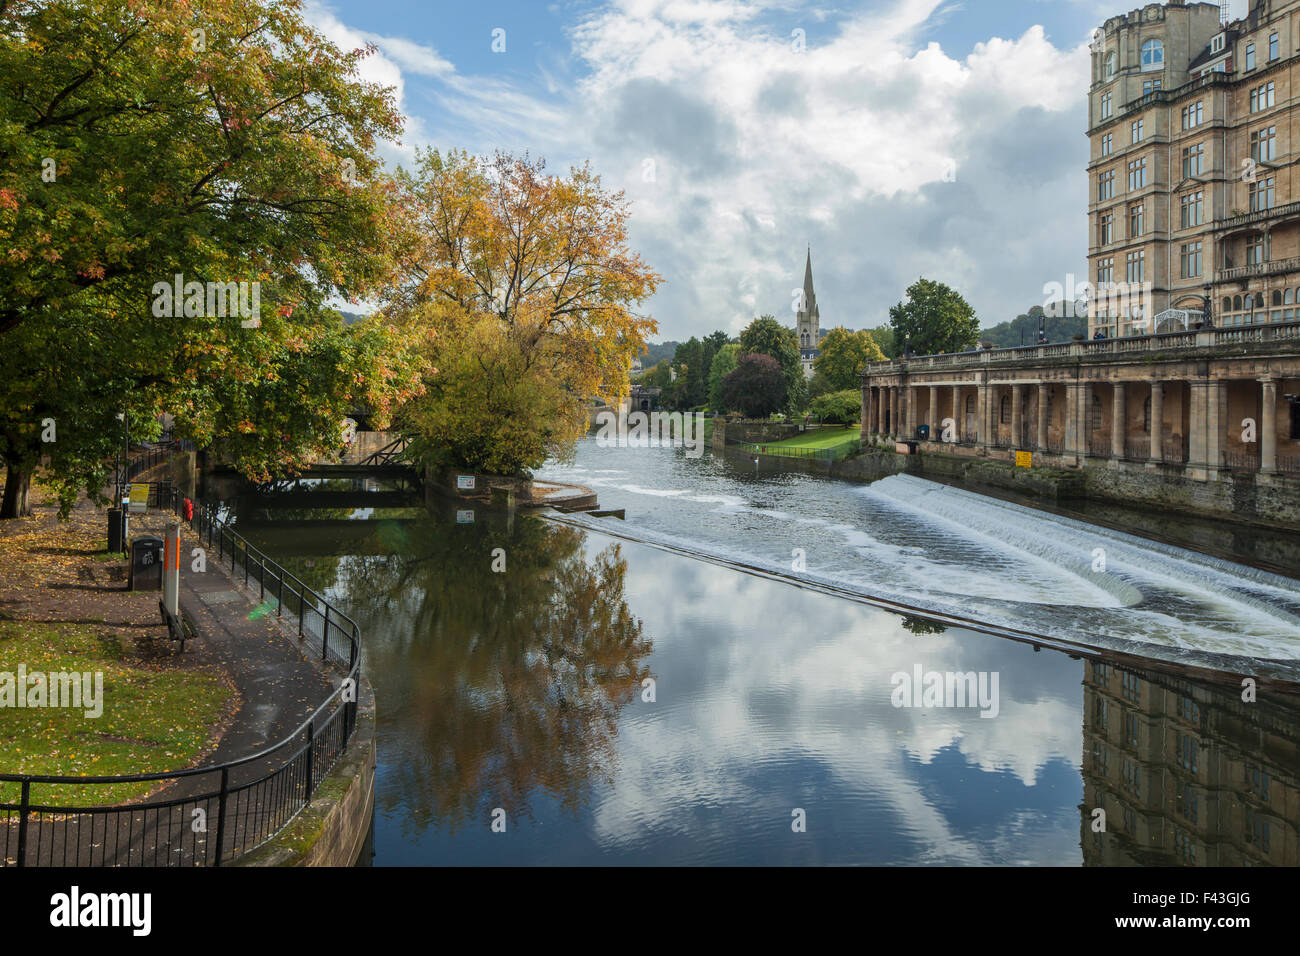 The Weir on river Avon in Bath, Somerset, England. - Stock Image